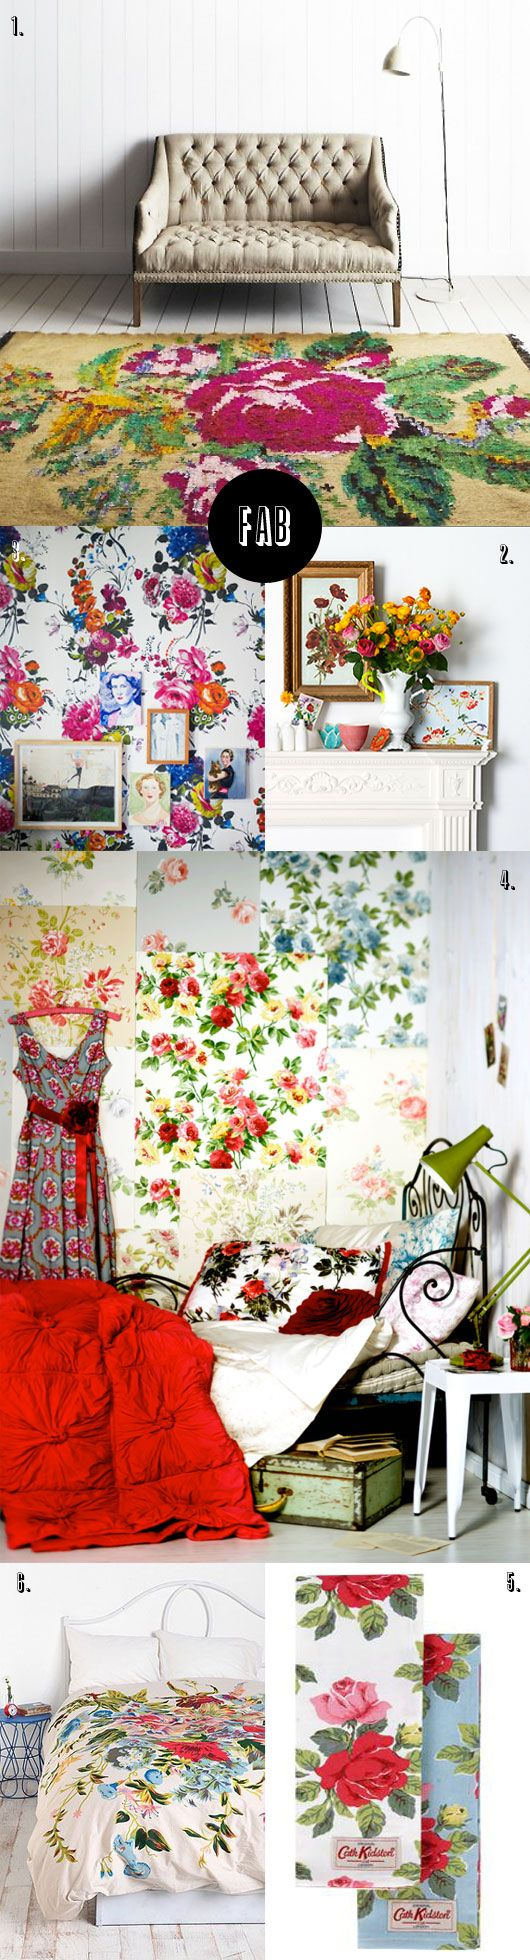 """Floral Galore, I especially love the floral """"wallpaper"""" patches on the wall in the bedroom. Gorgeous, and I could lay in those amazing comforters all day."""